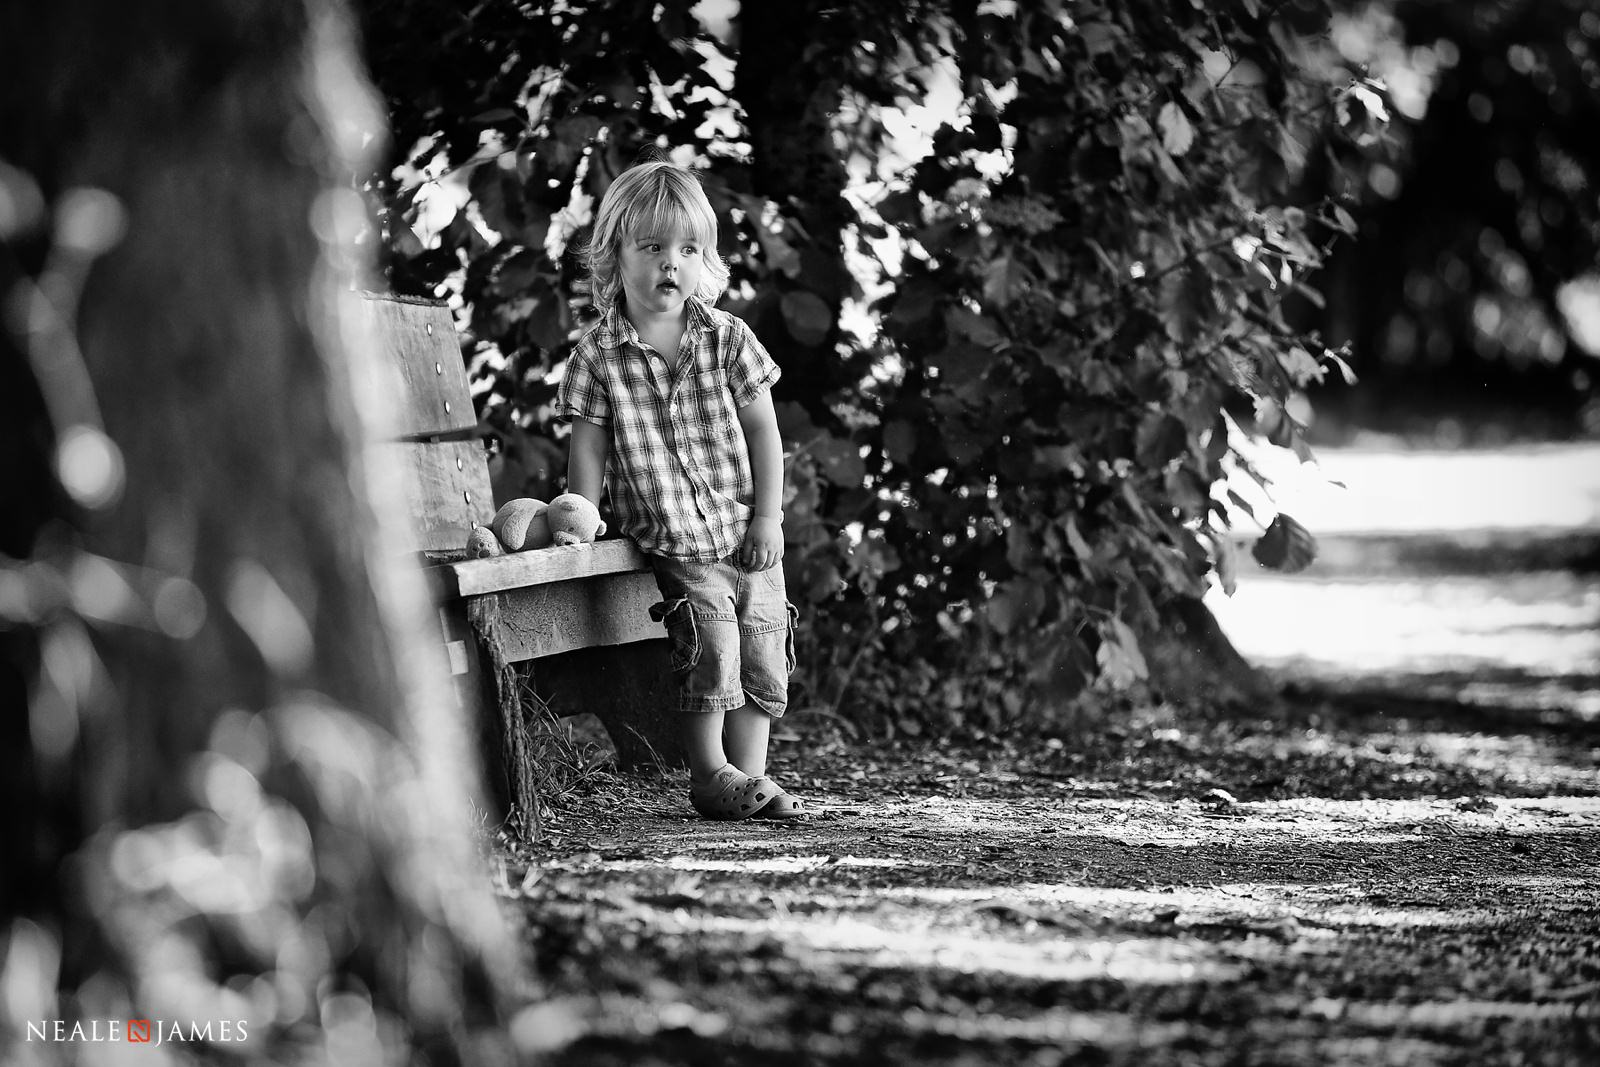 Monochrome picture of a boy by a park bench